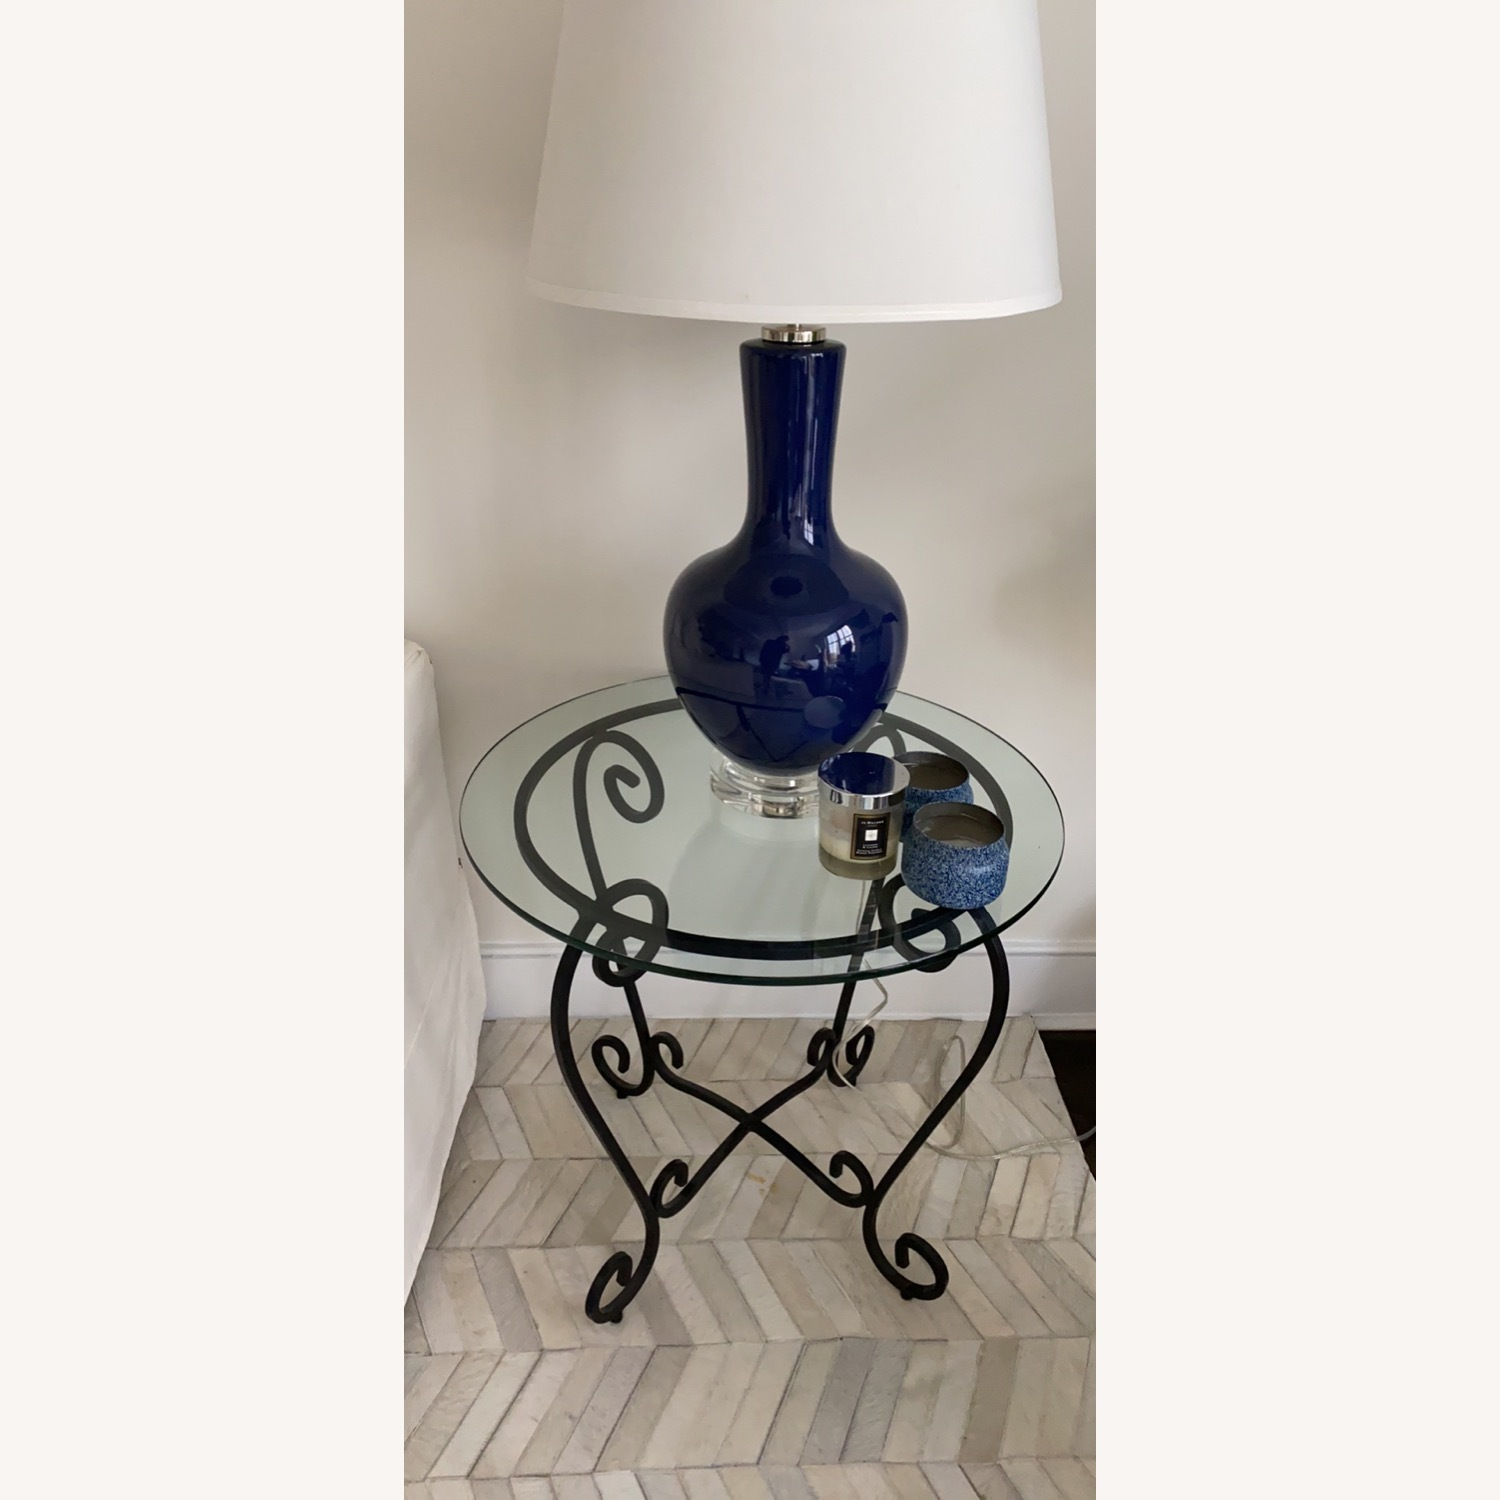 2 French Brass and Glass End Tables - image-2